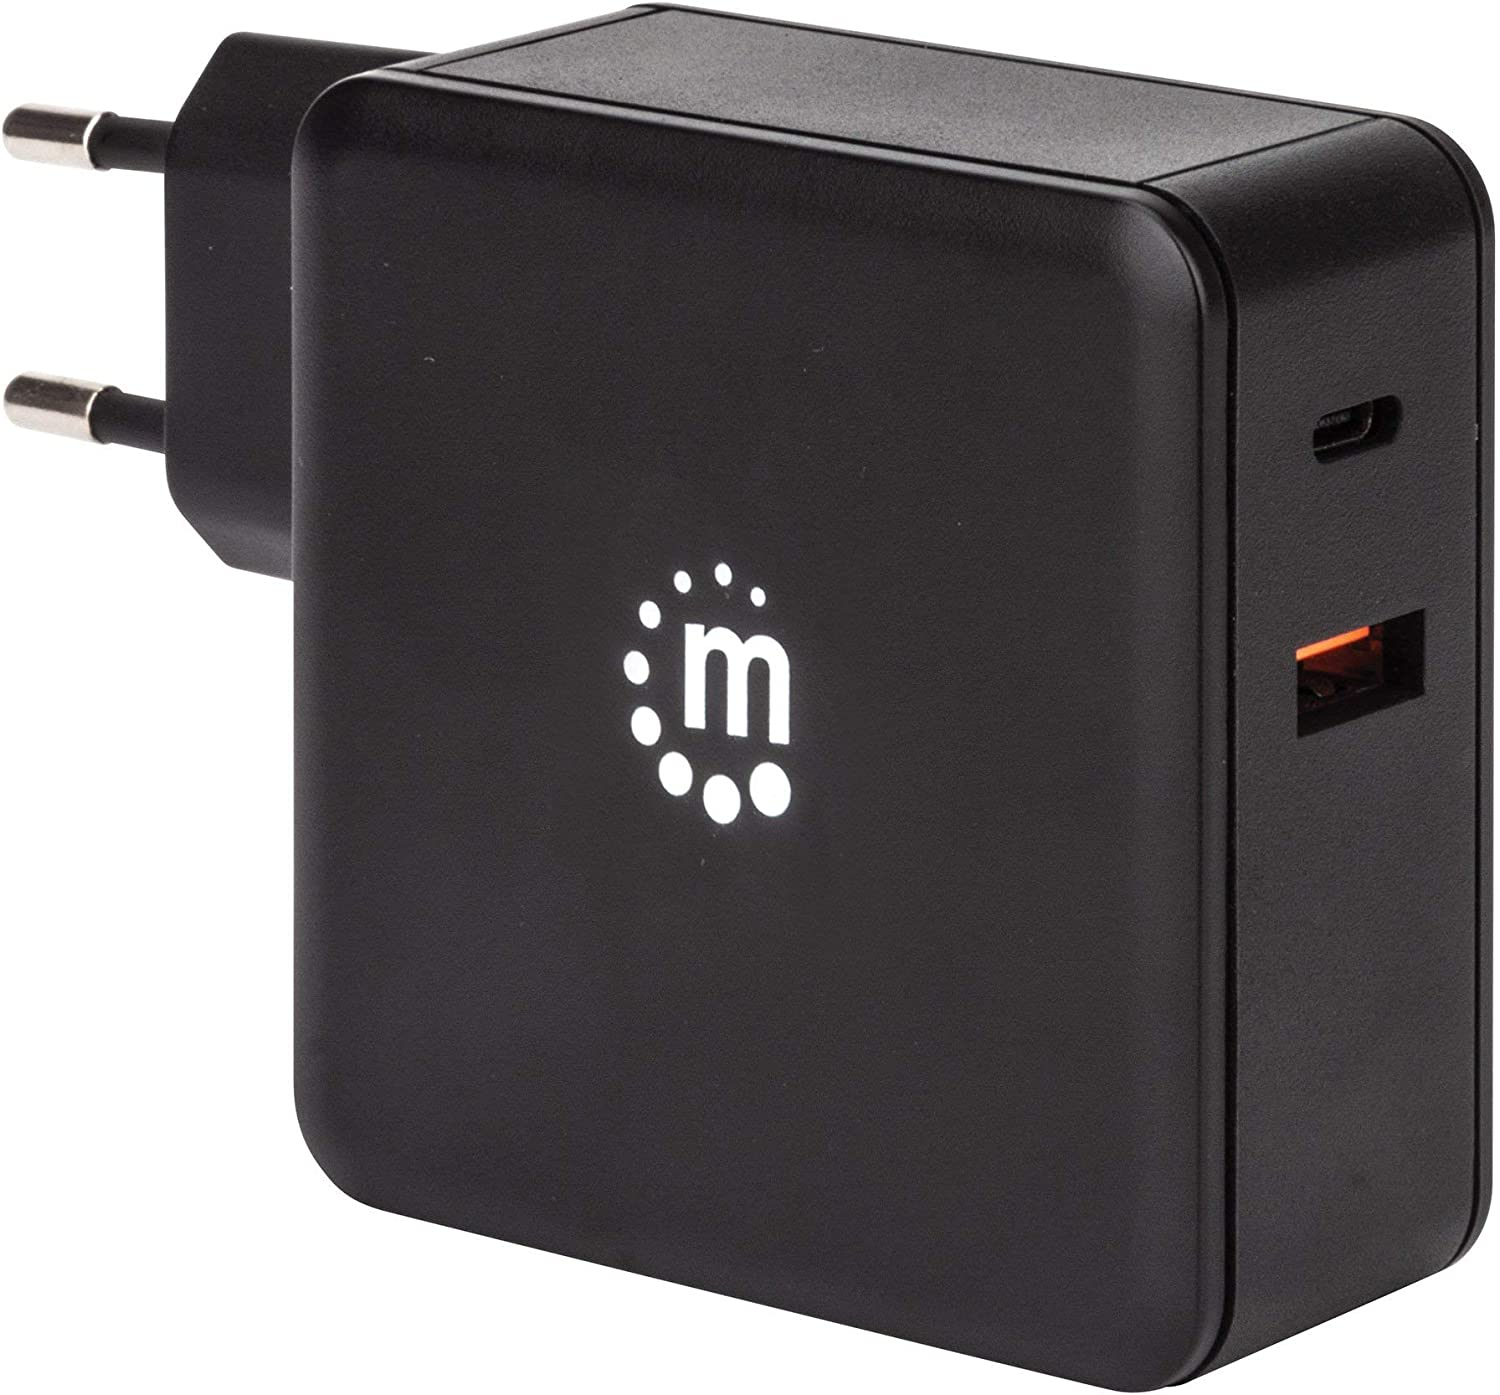 55% OFF Direct sale of manufacturer Manhattan Power Delivery Wall Charger Deliver – 60 W USB-C